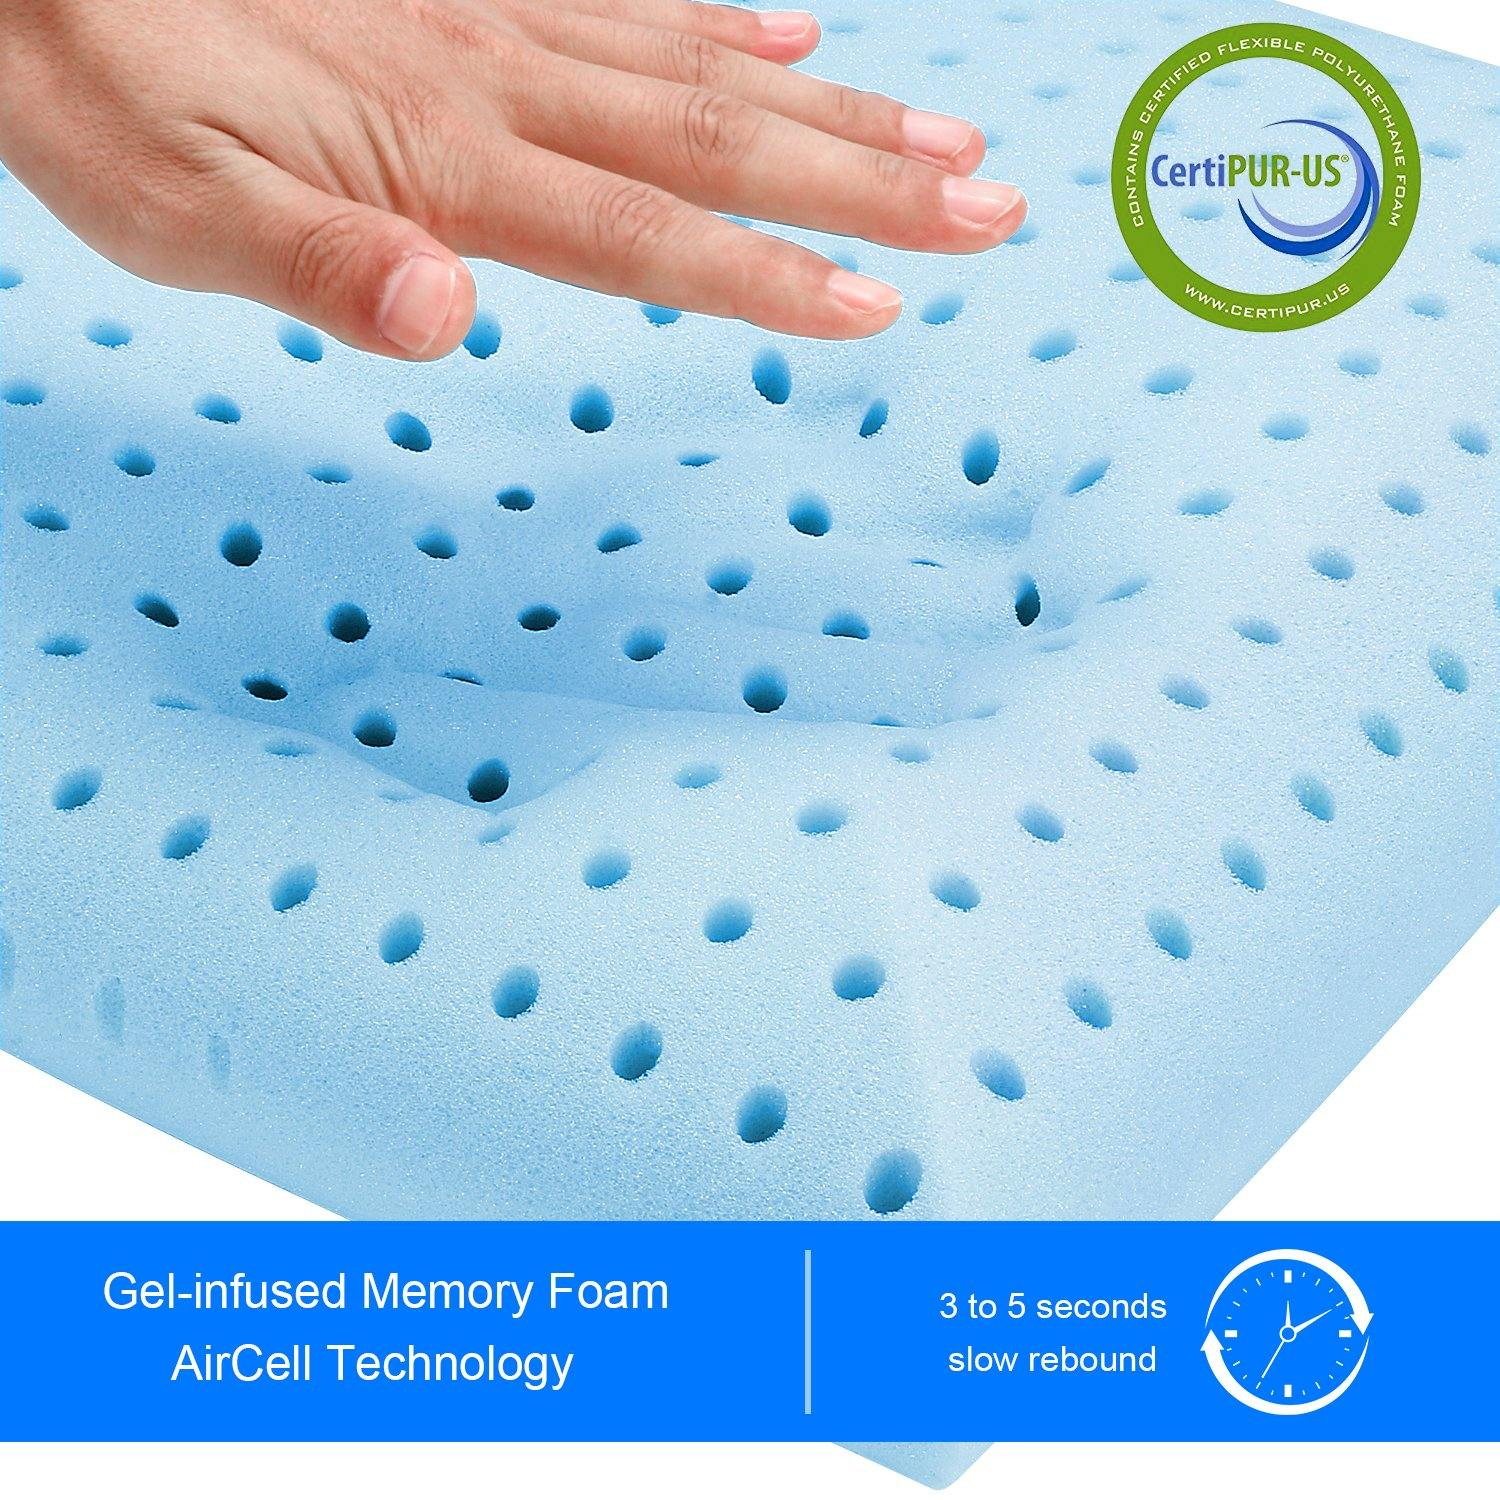 Milemont Ventilated Gel Memory Foam Pillow, Bed Pillows for Sleeping, CertiPUR-US